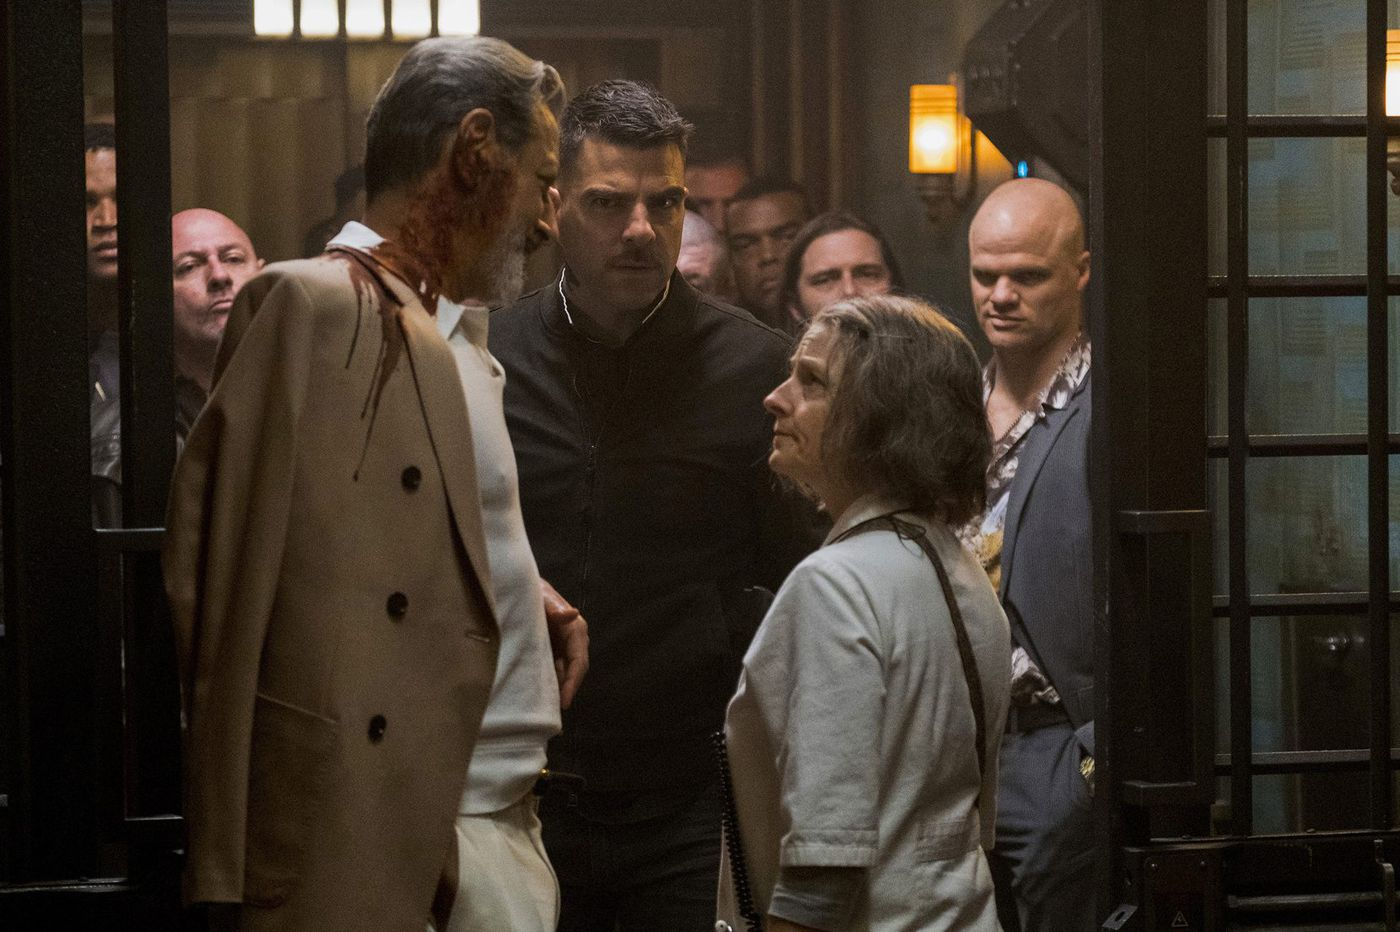 'Hotel Artemis': Jodie Foster heads a hotel for criminals in this stylish action flick